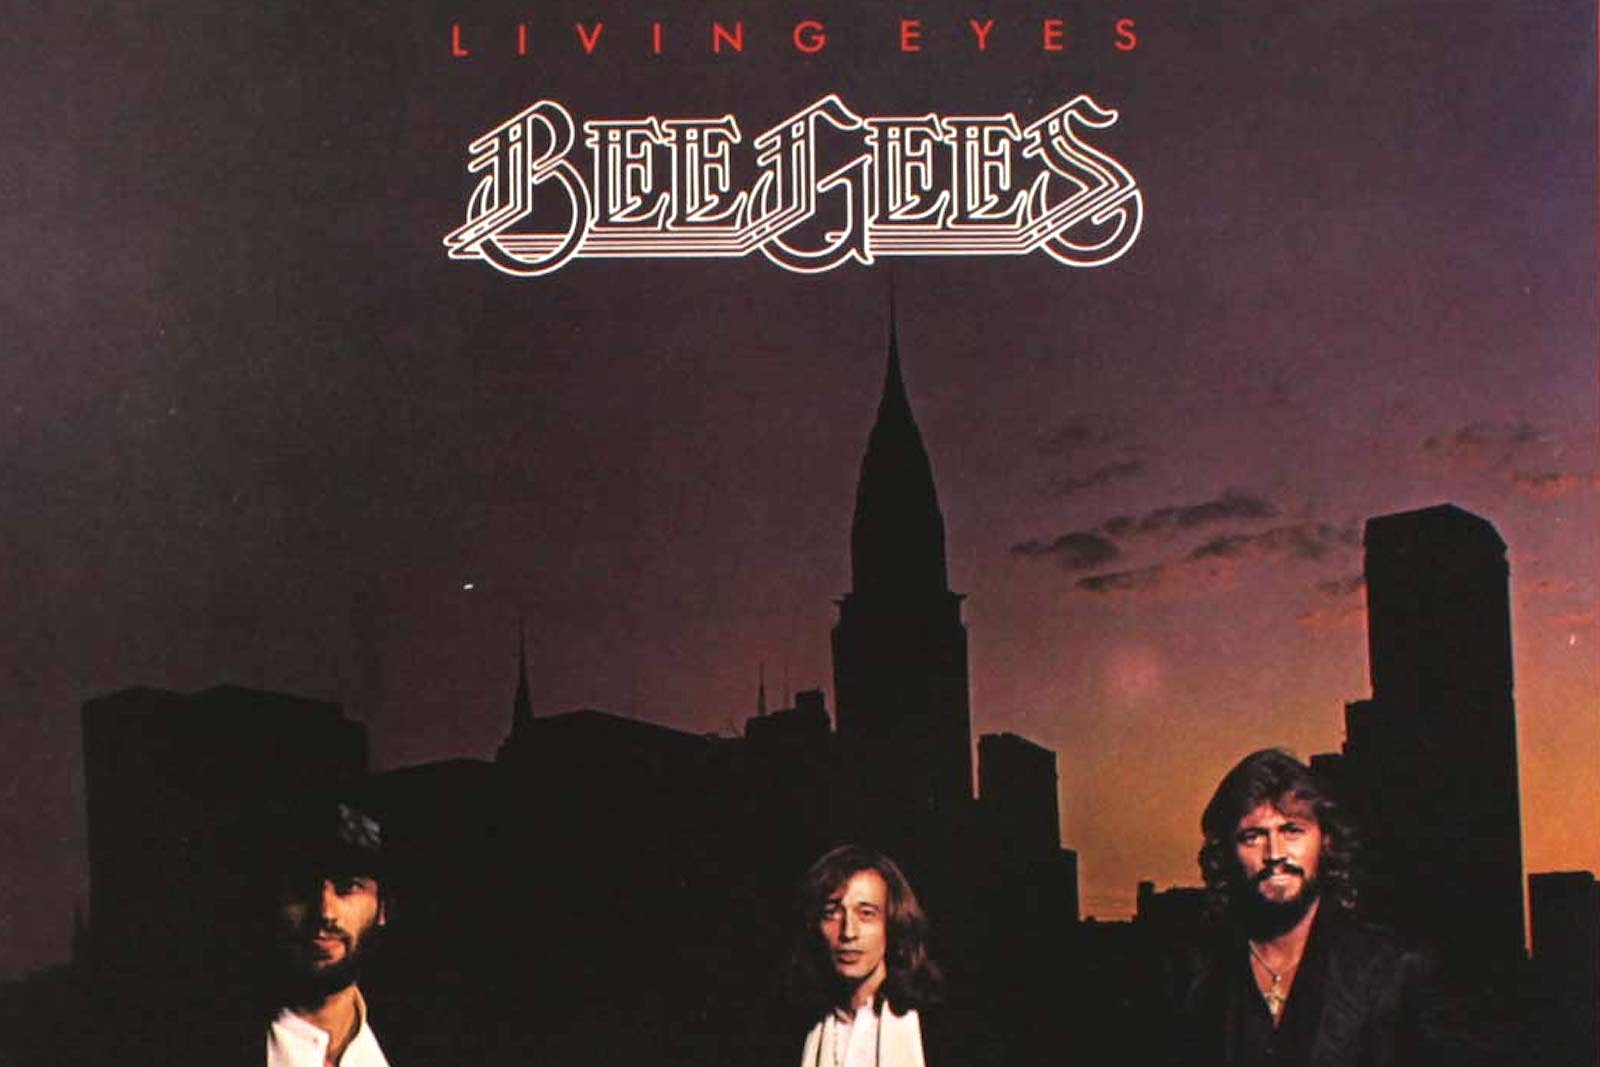 When the Bees Gees Broke Away From Disco on 'Living Eyes'